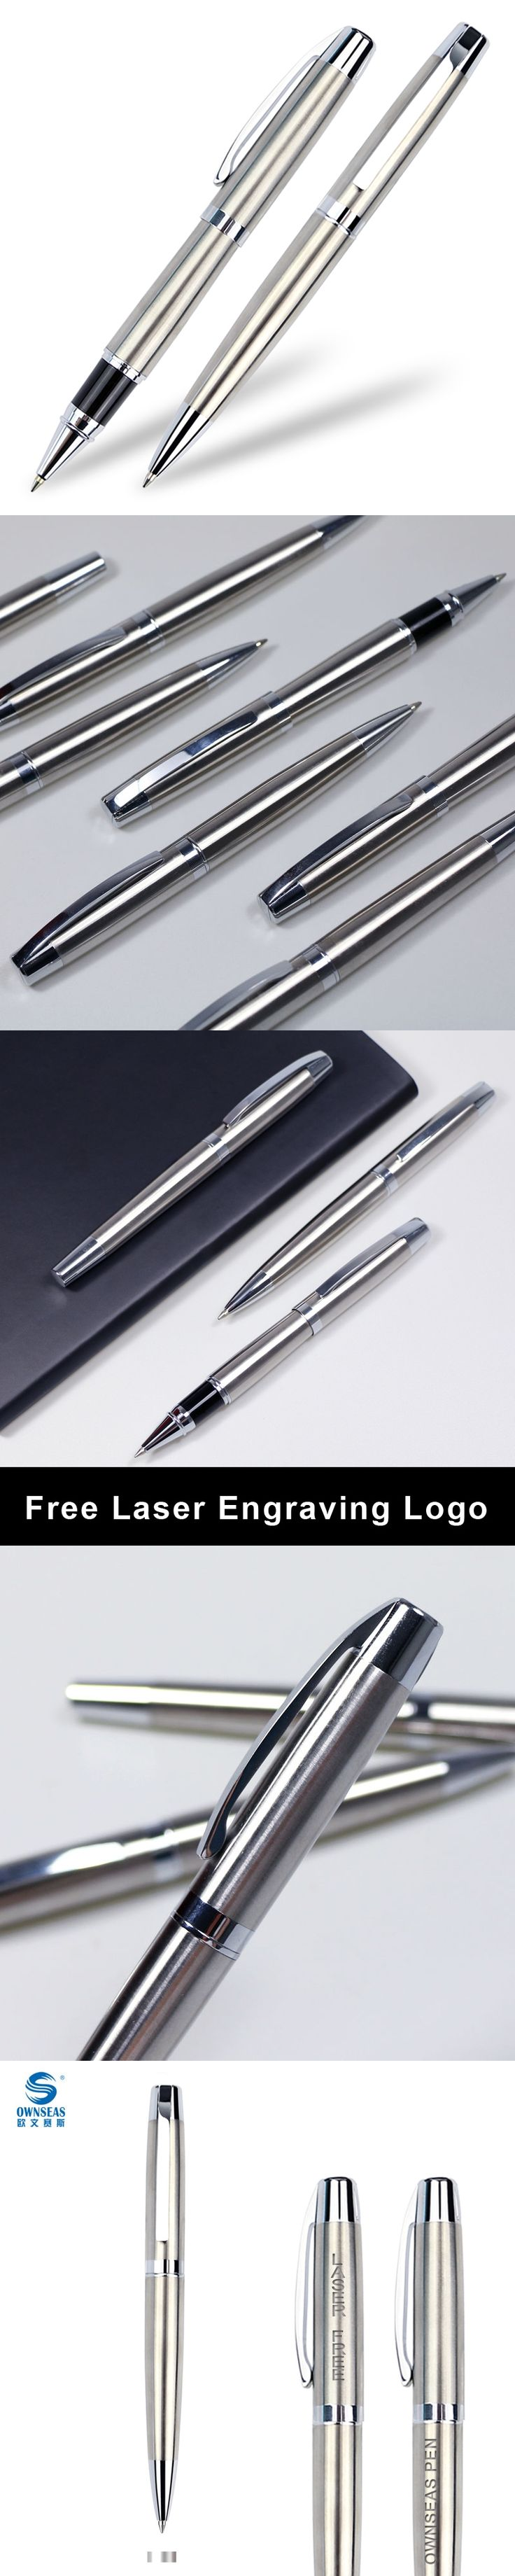 Novelty gifts metal ballpoint pens for writing with customized free engraving logo printing